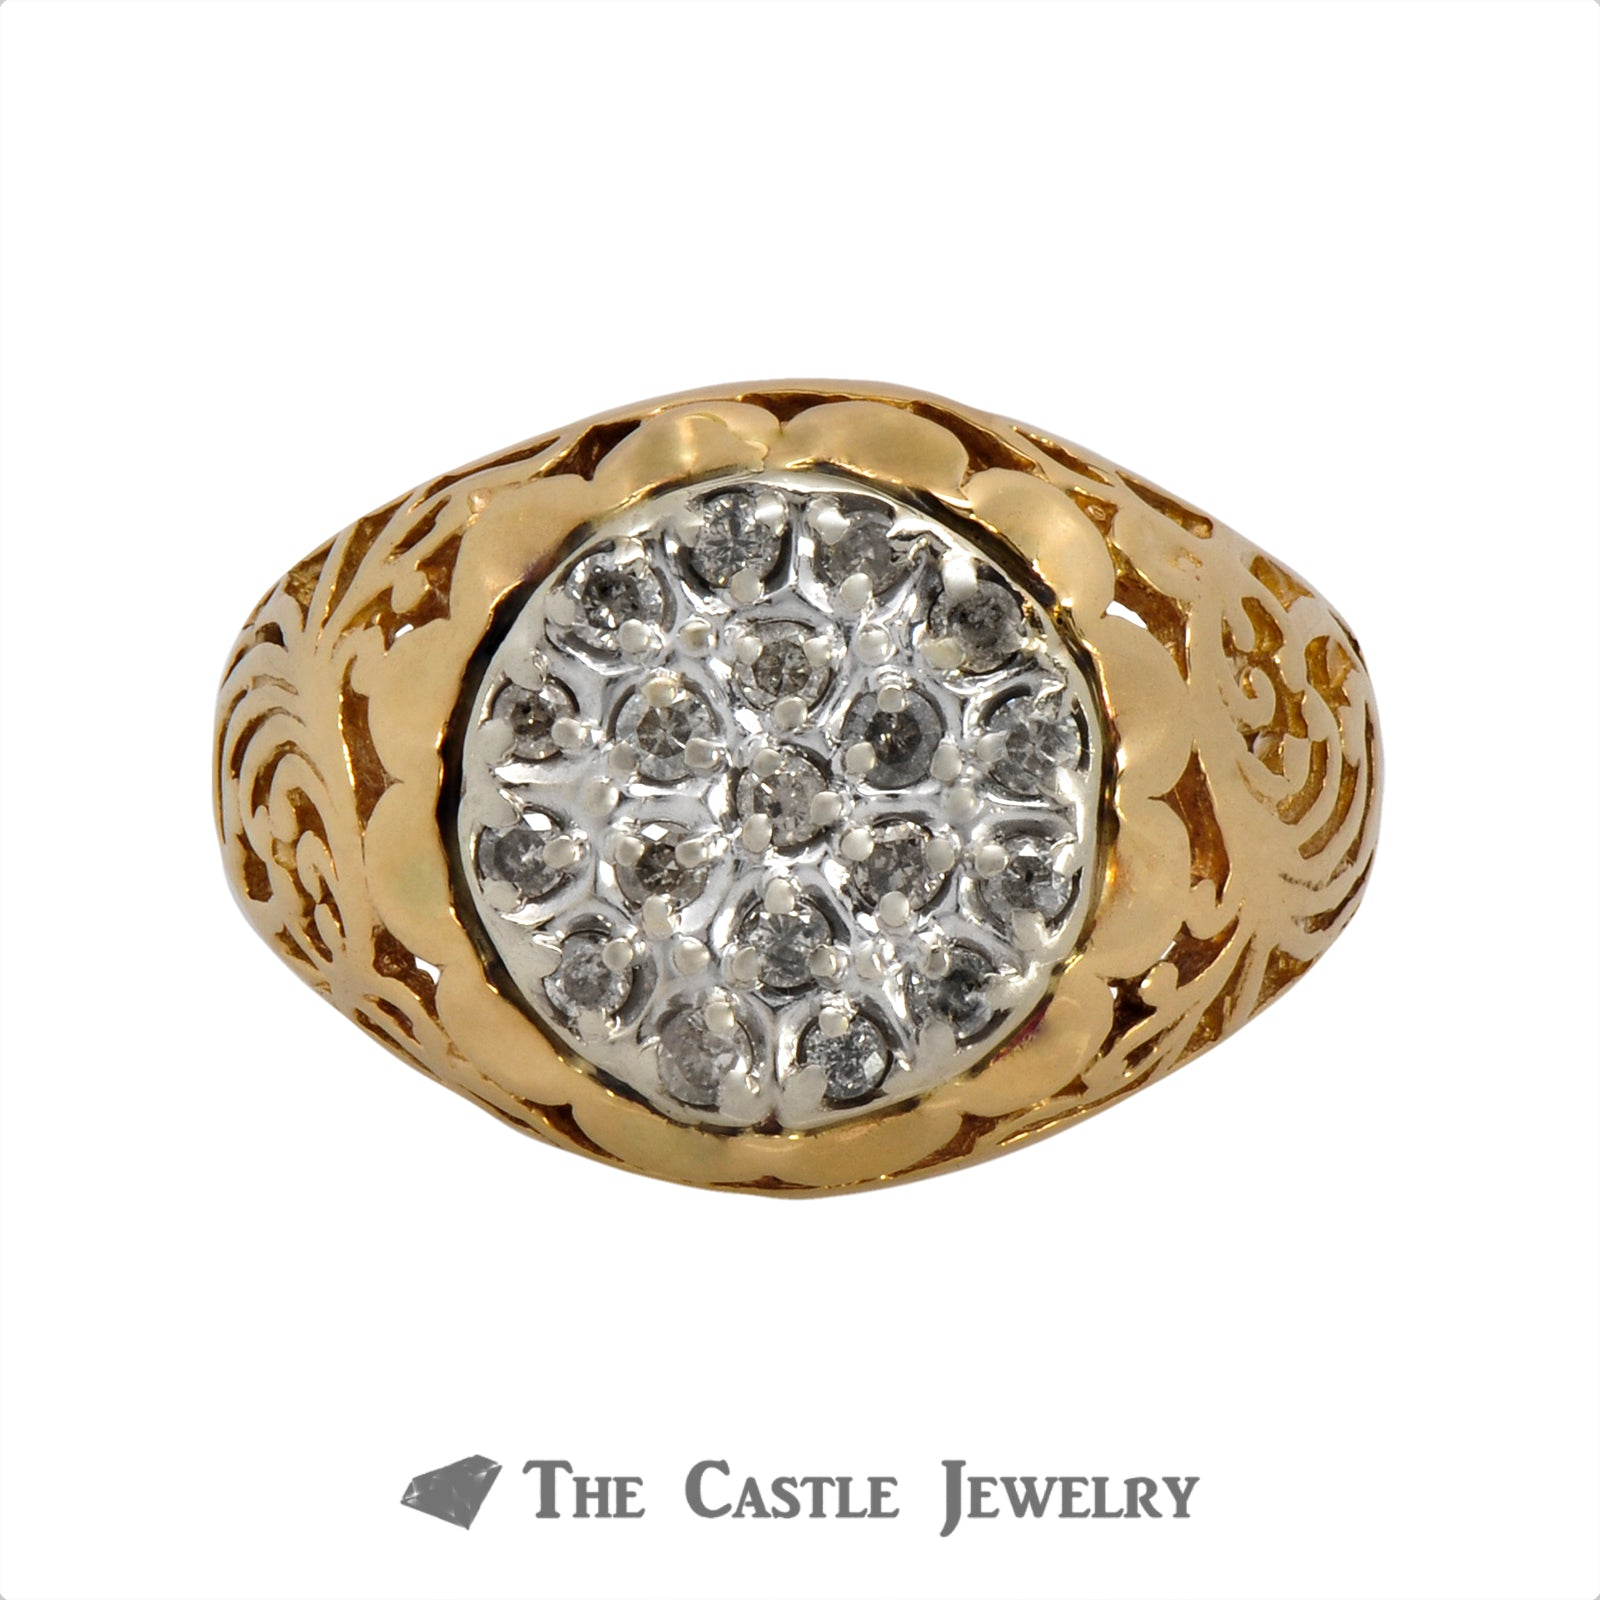 19 Diamond Kentucky Cluster Ring in 10K Yellow Gold